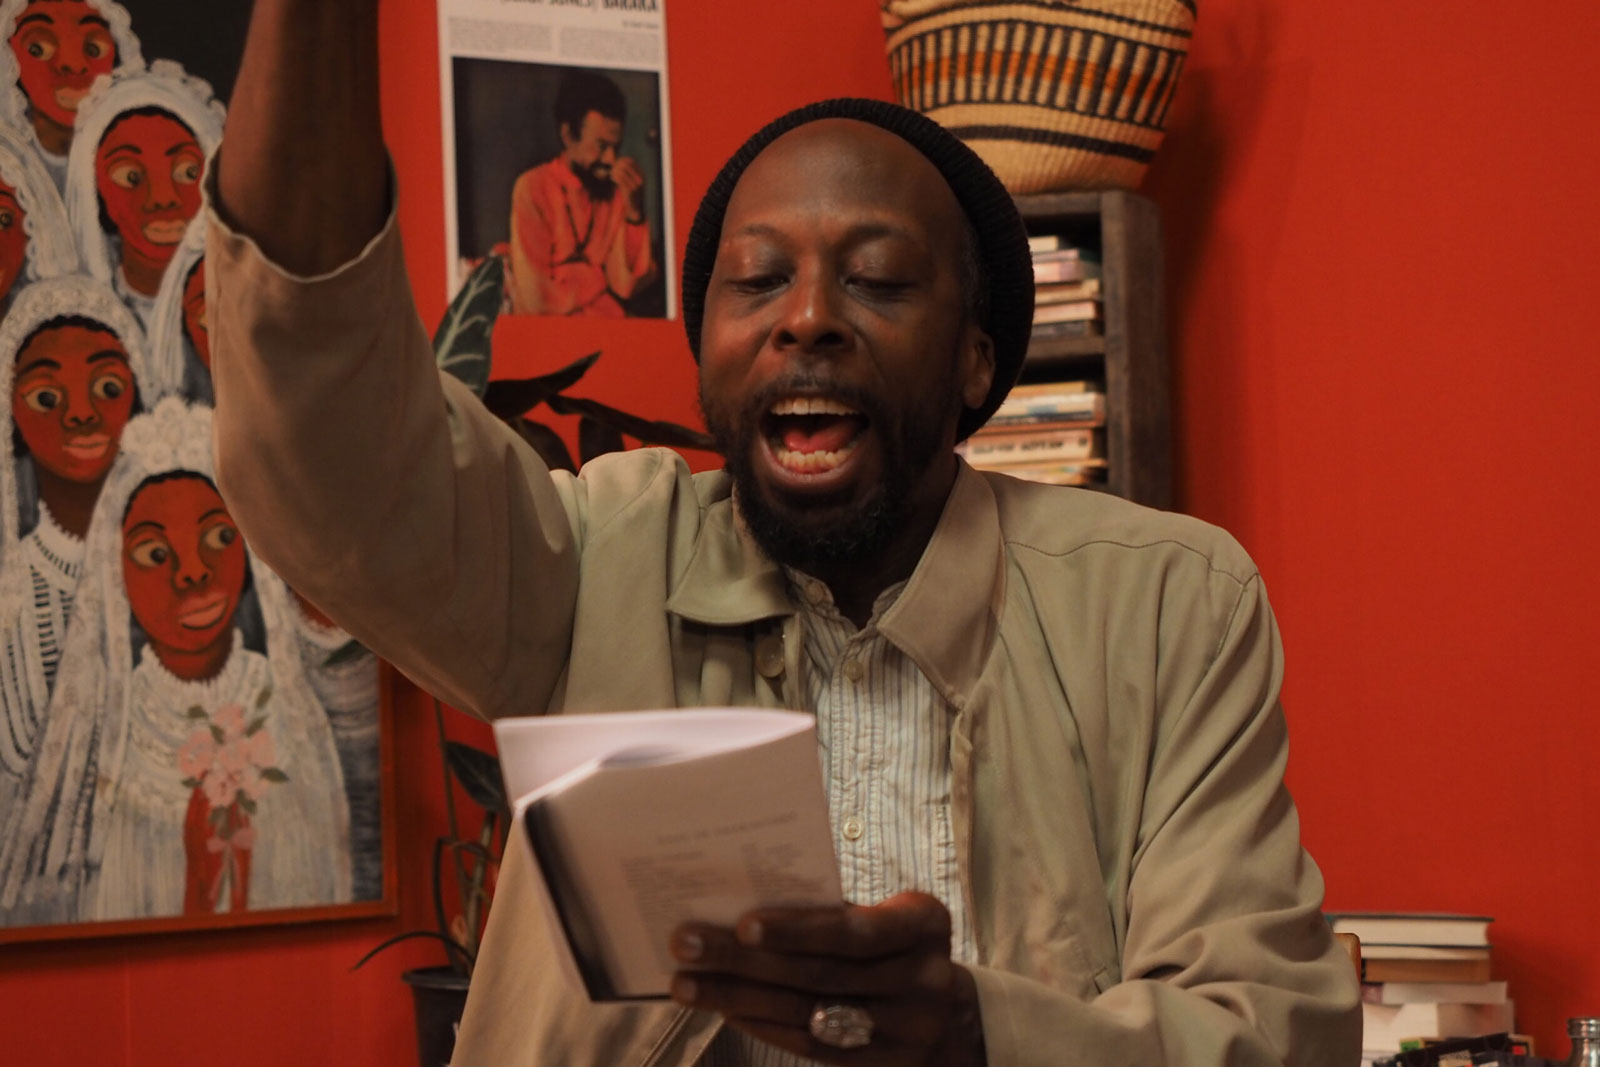 A black man reading from a text with his hand up in emphasis, before a red background